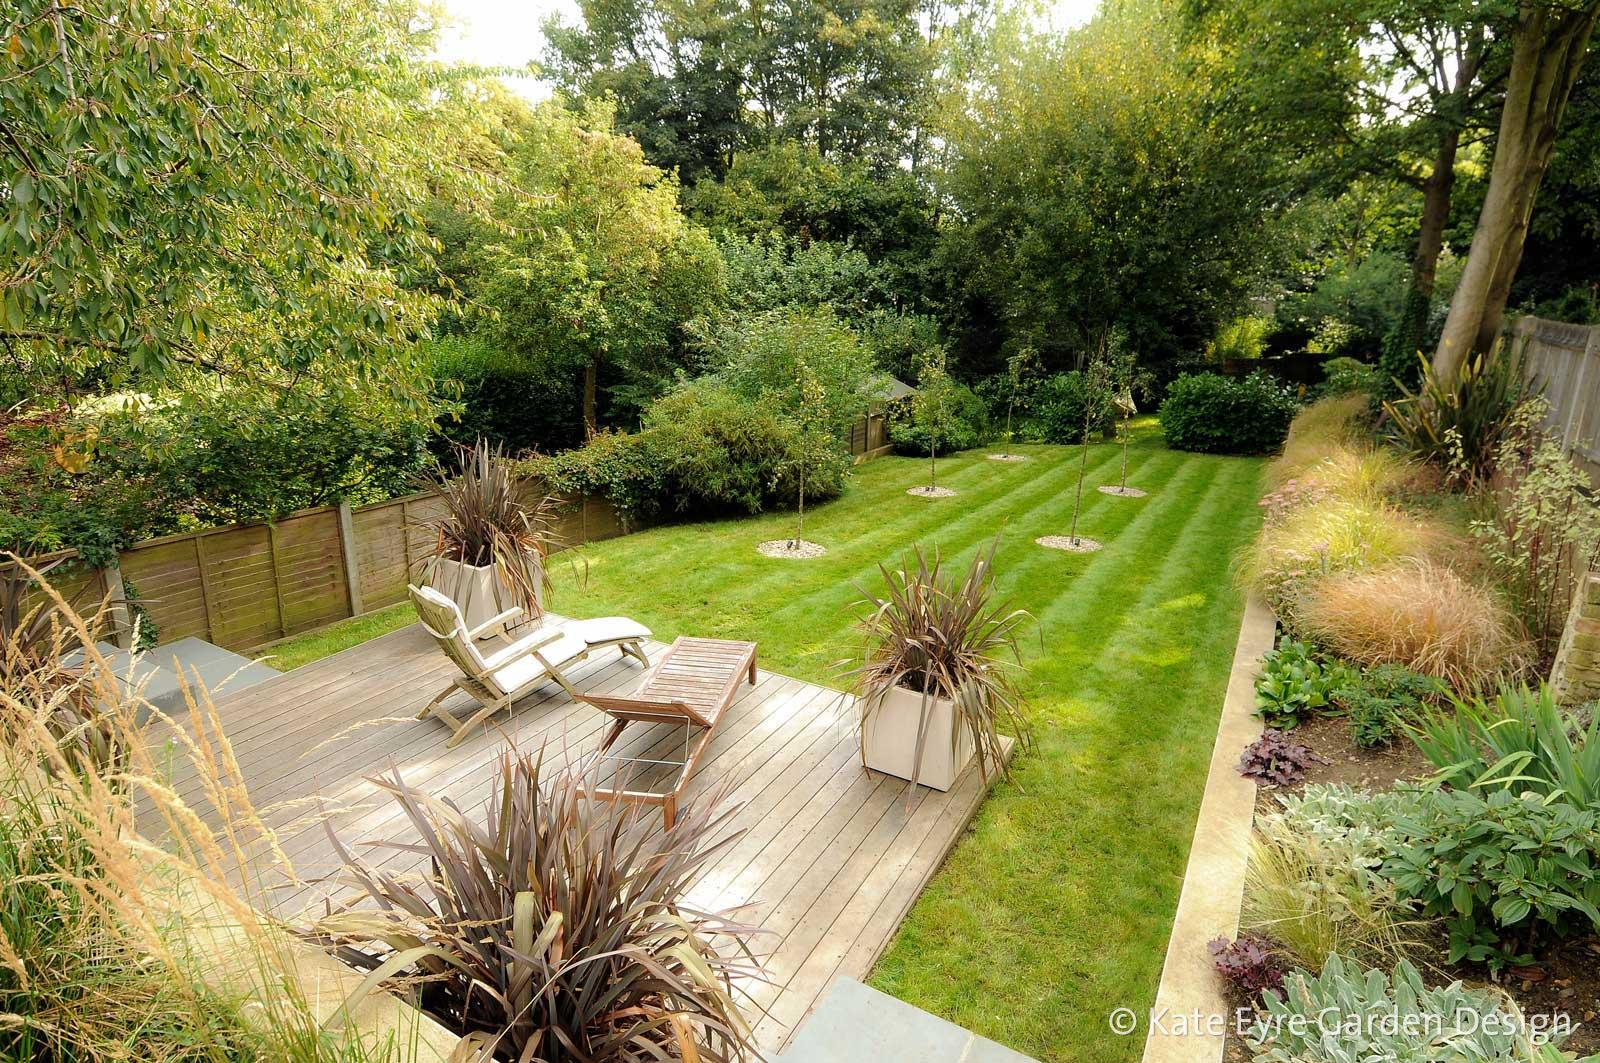 Garden design in crystal palace south east london Backyard design pictures